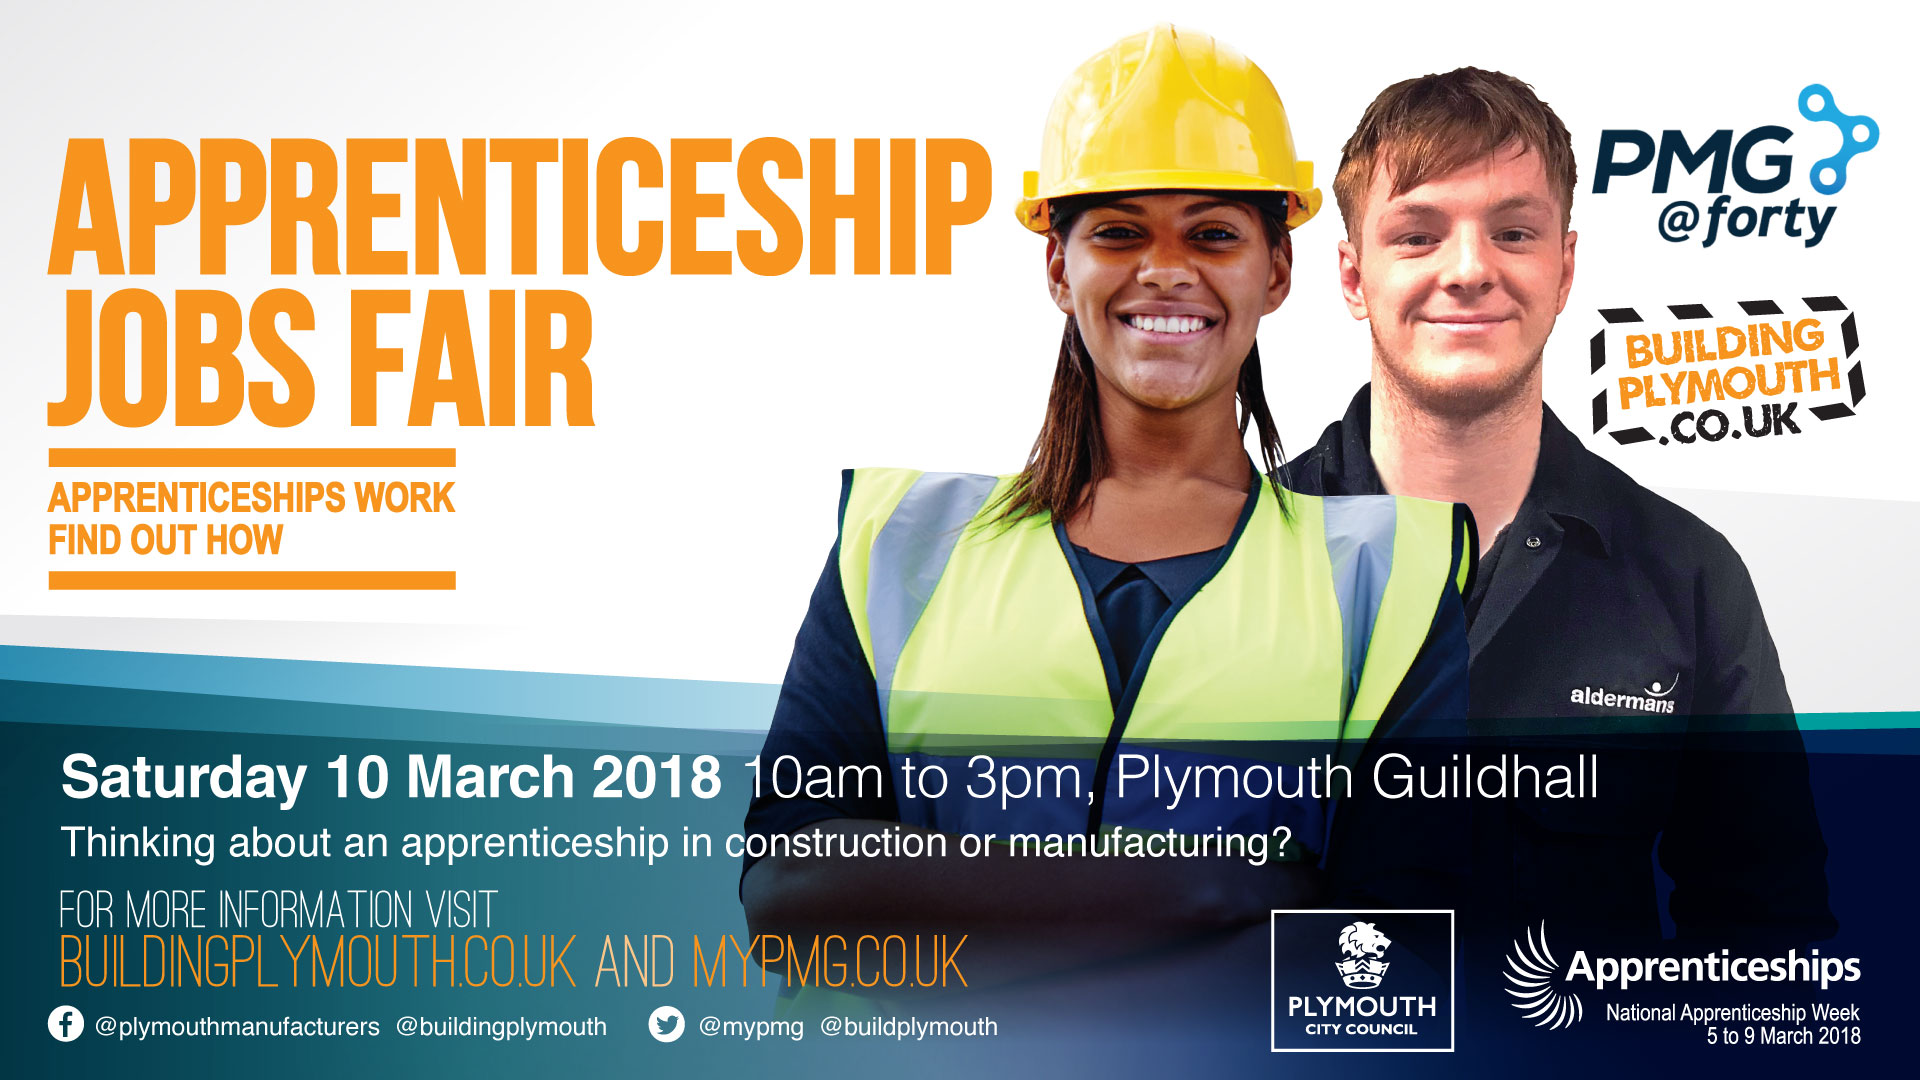 Apprentices Fair - Building Plymouth